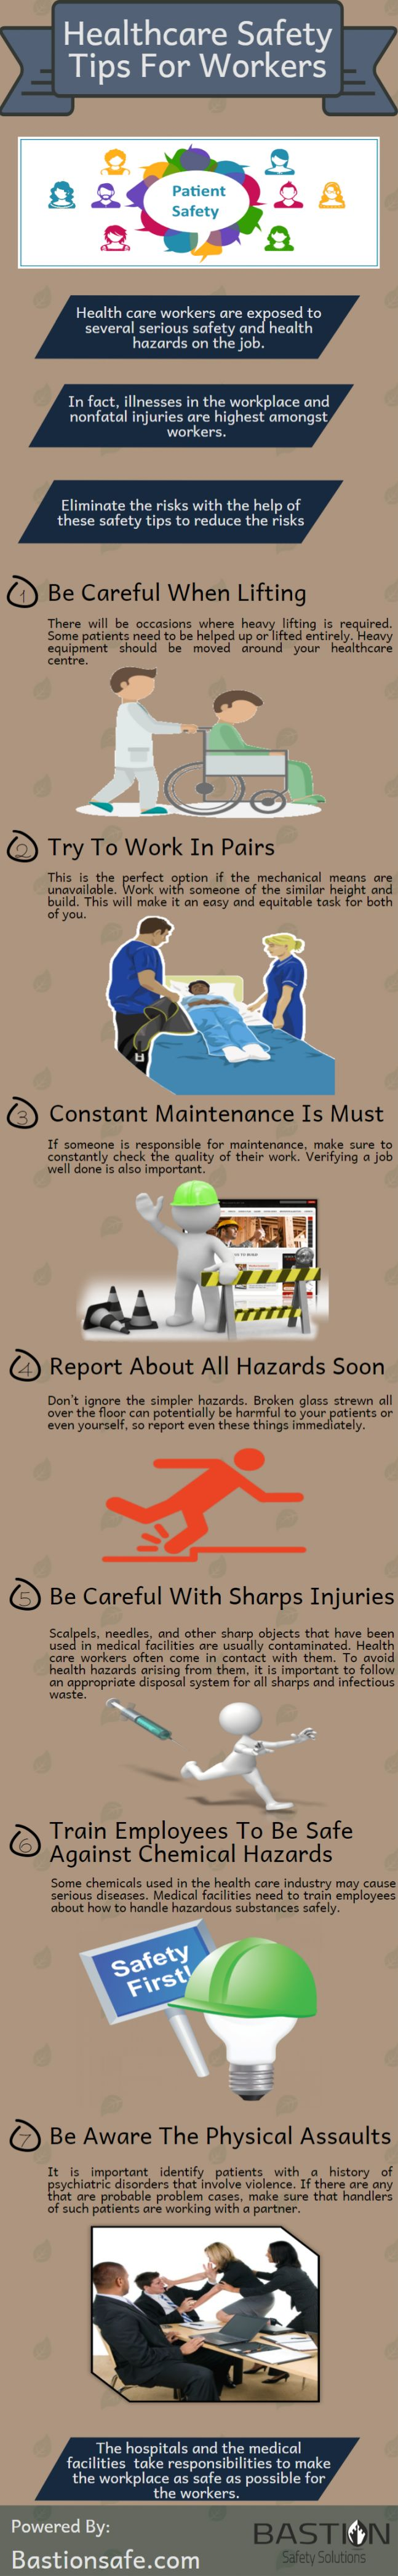 Healthcare safety tips for workers